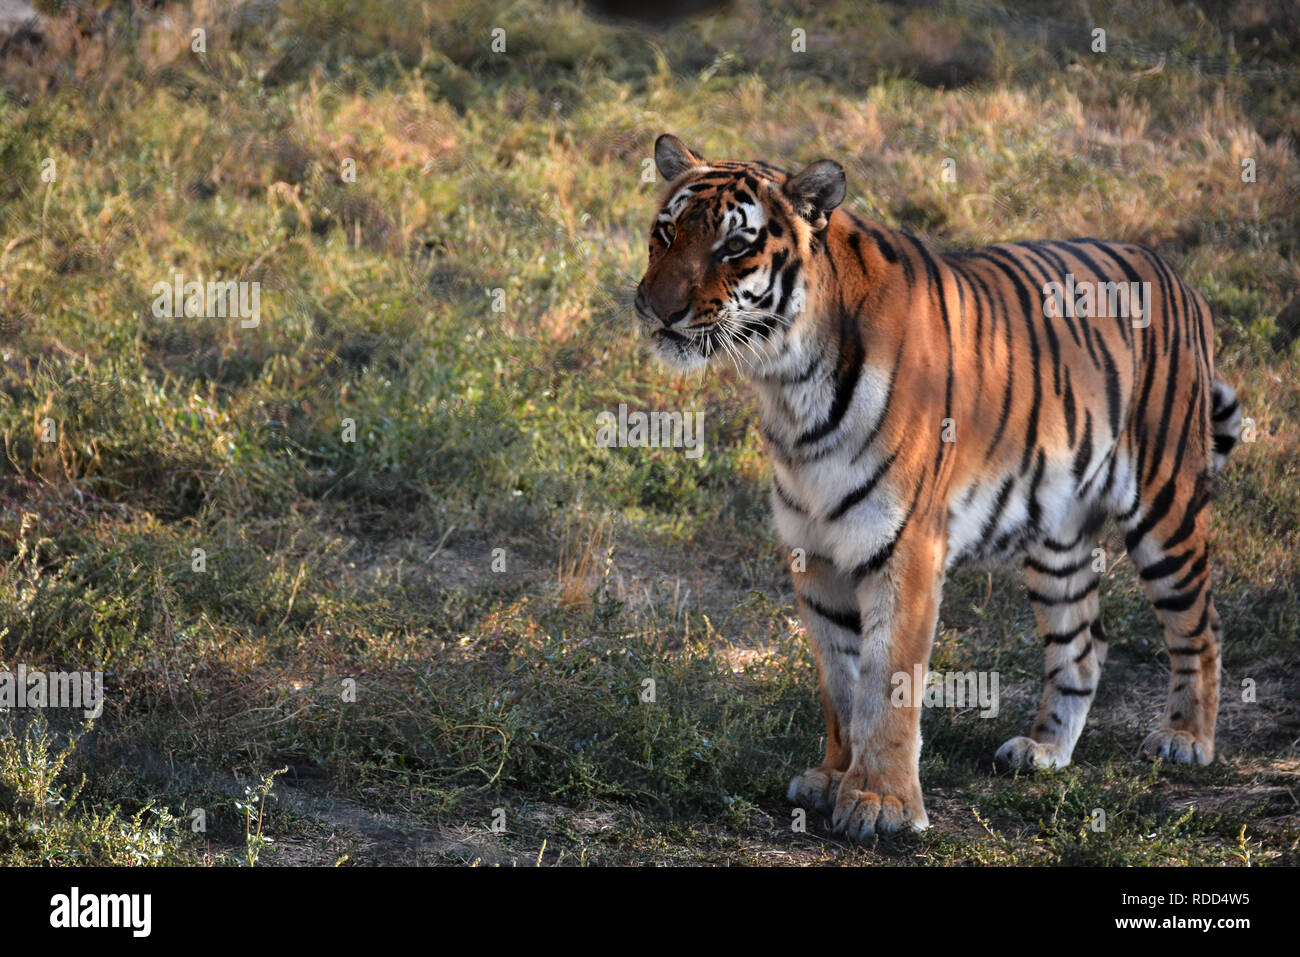 https://c8.alamy.com/comp/RDD4W5/a-bengal-tiger-also-known-as-indian-tiger-scientific-name-panthera-tigris-wildlife-with-danger-animal-tiger-in-zoo-armenia-RDD4W5.jpg